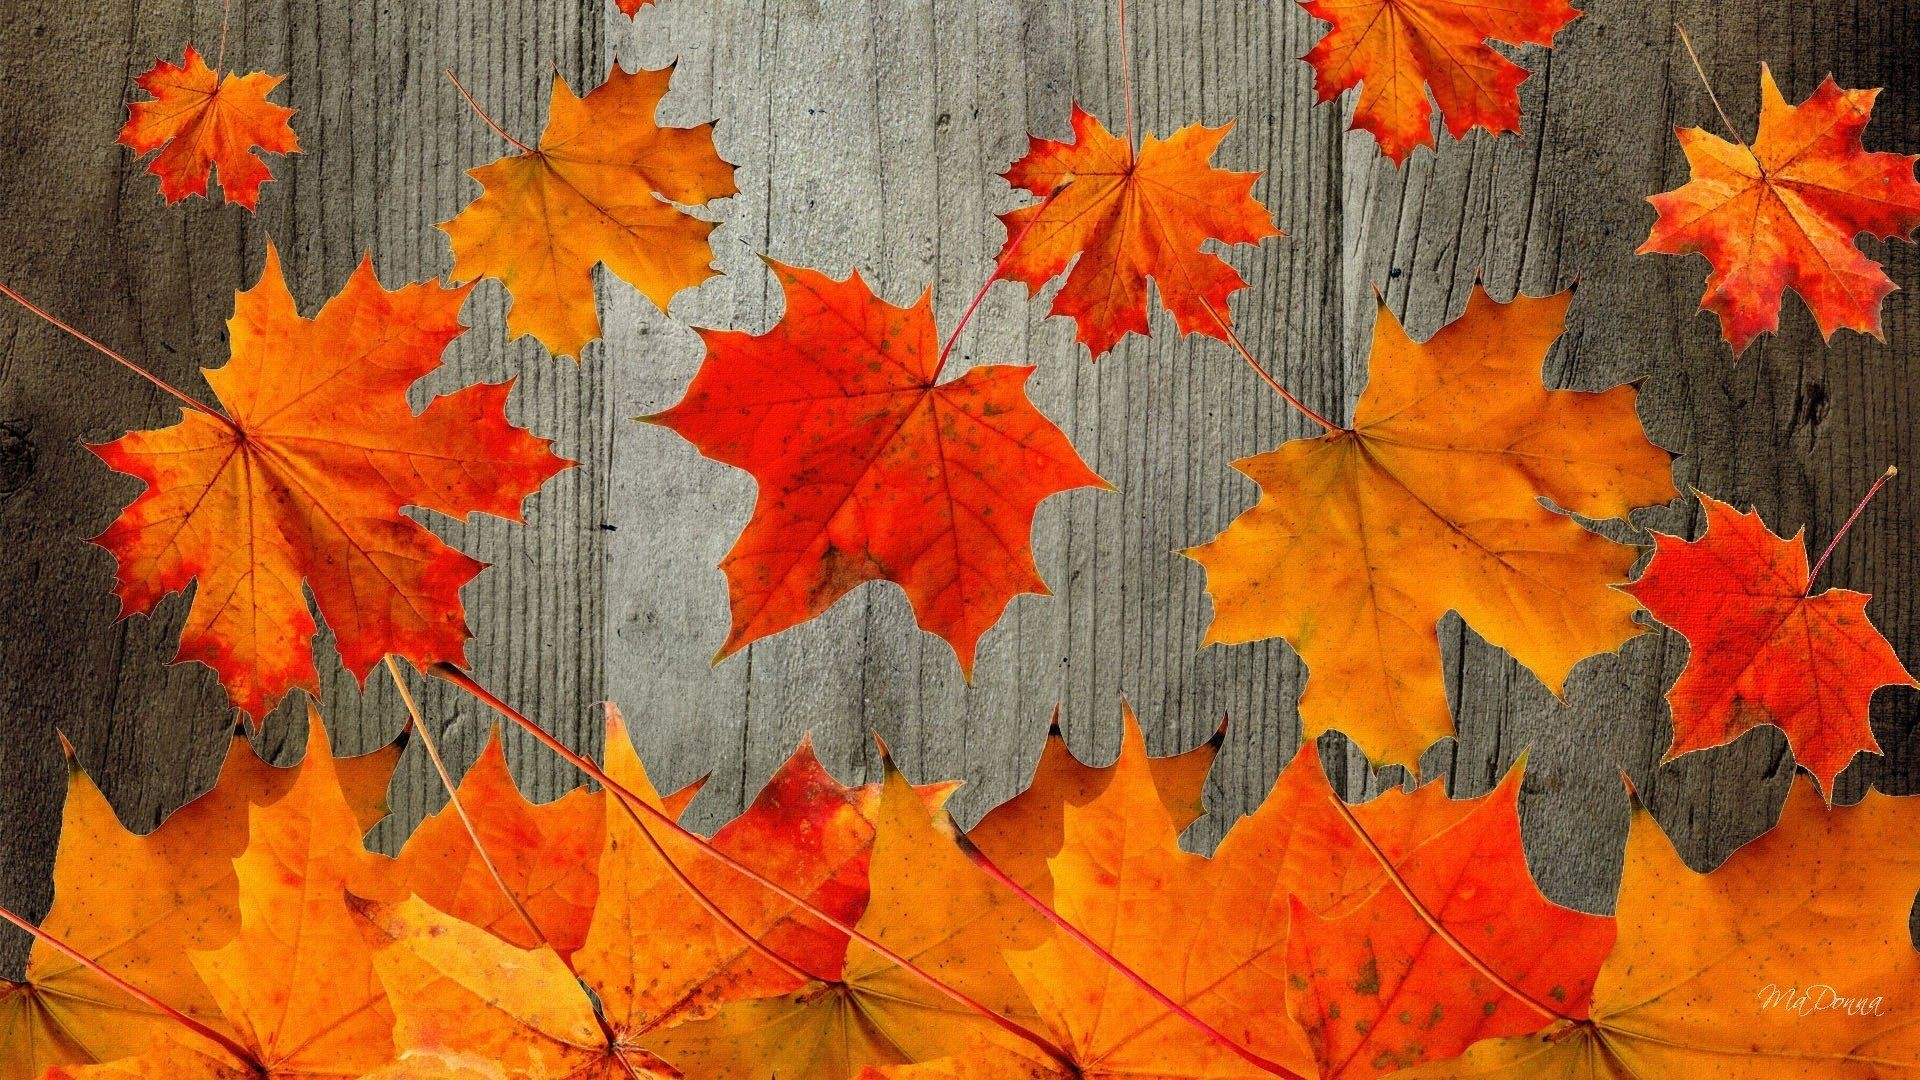 Peachy Autumn Wallpapers For Desktop 65 Background Pictures Home Interior And Landscaping Ologienasavecom